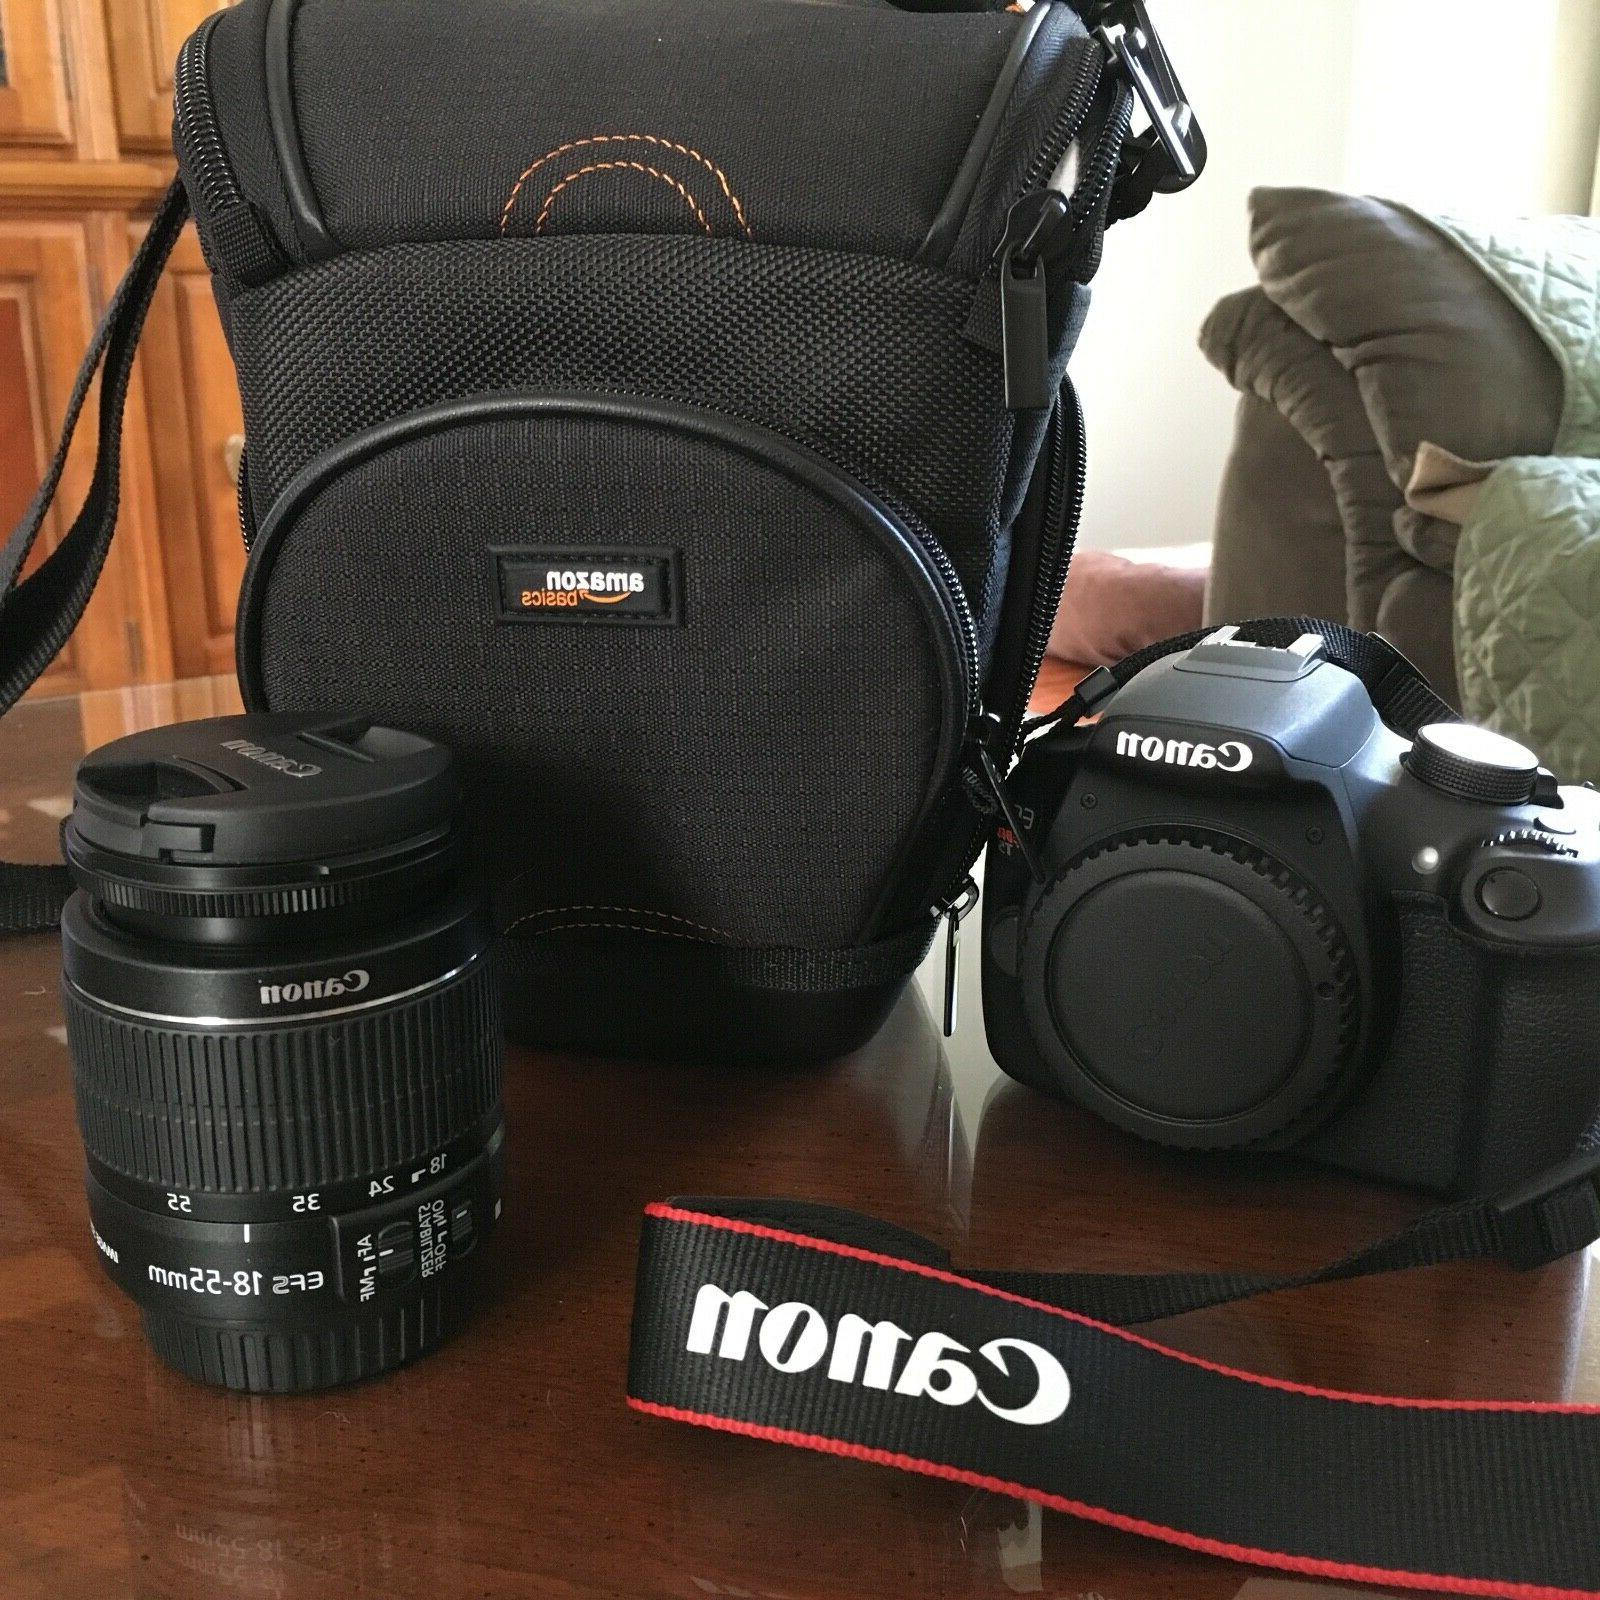 Canon Rebel T5 Digital with EF-S 18-55mm II Lens